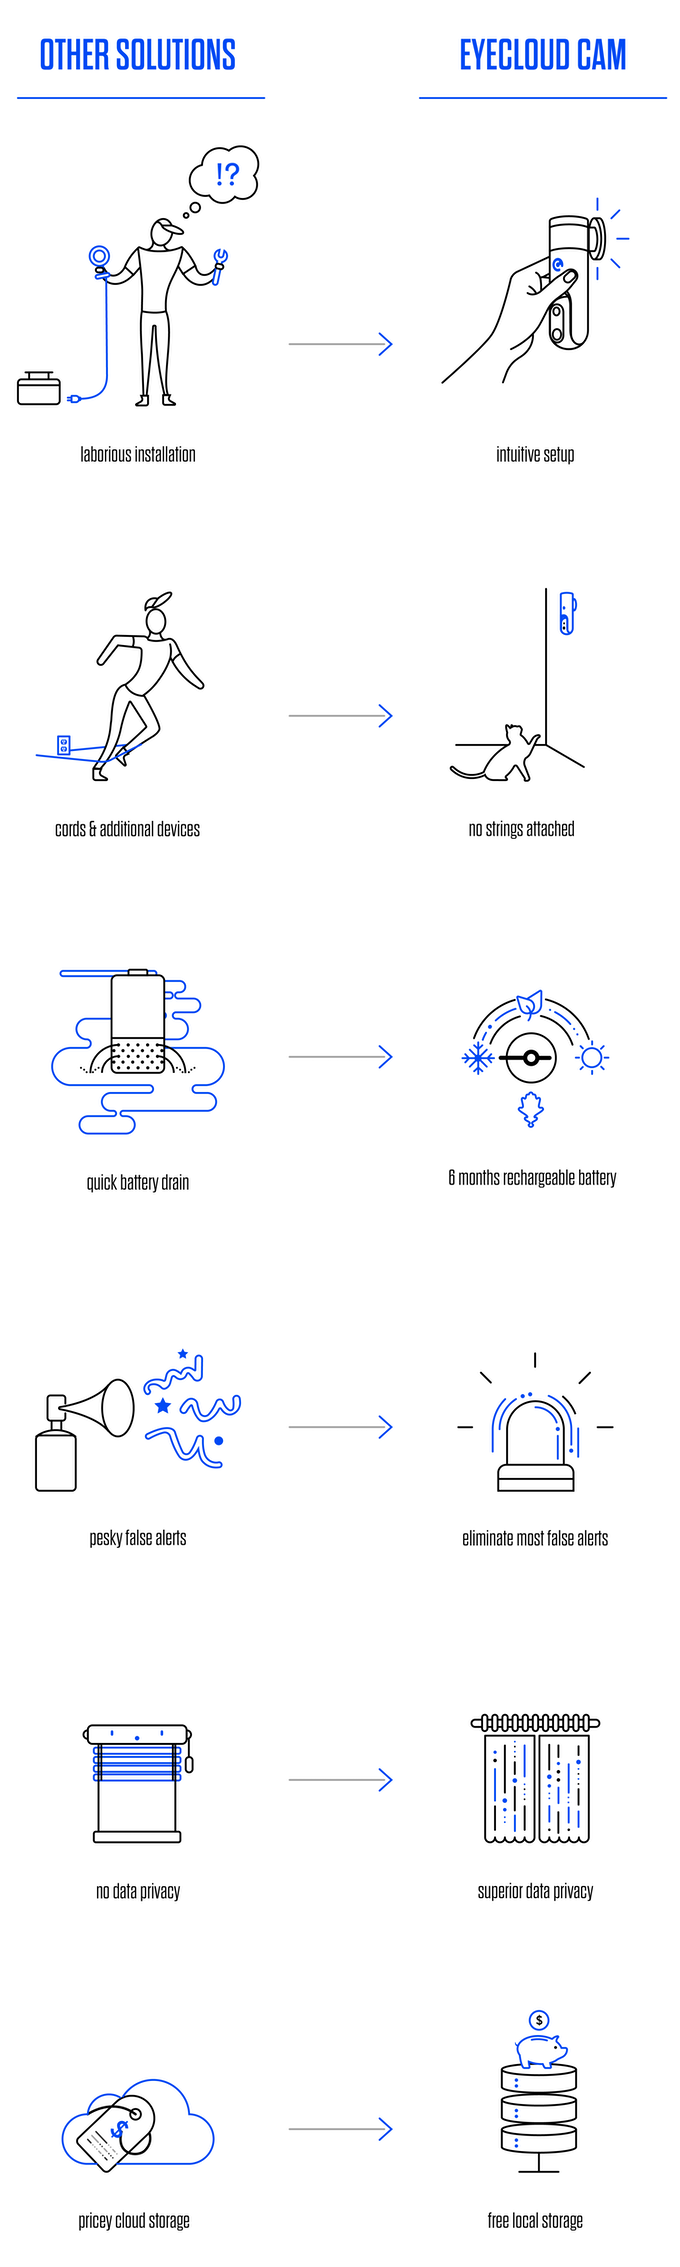 Eyecloud Cam The Smartest Ai Home Security Camera Ever By Diagram My Blog One Of Biggest Challenges In Development Was To Collect All Intelligent Features Surveillance Cameras On A Single Device